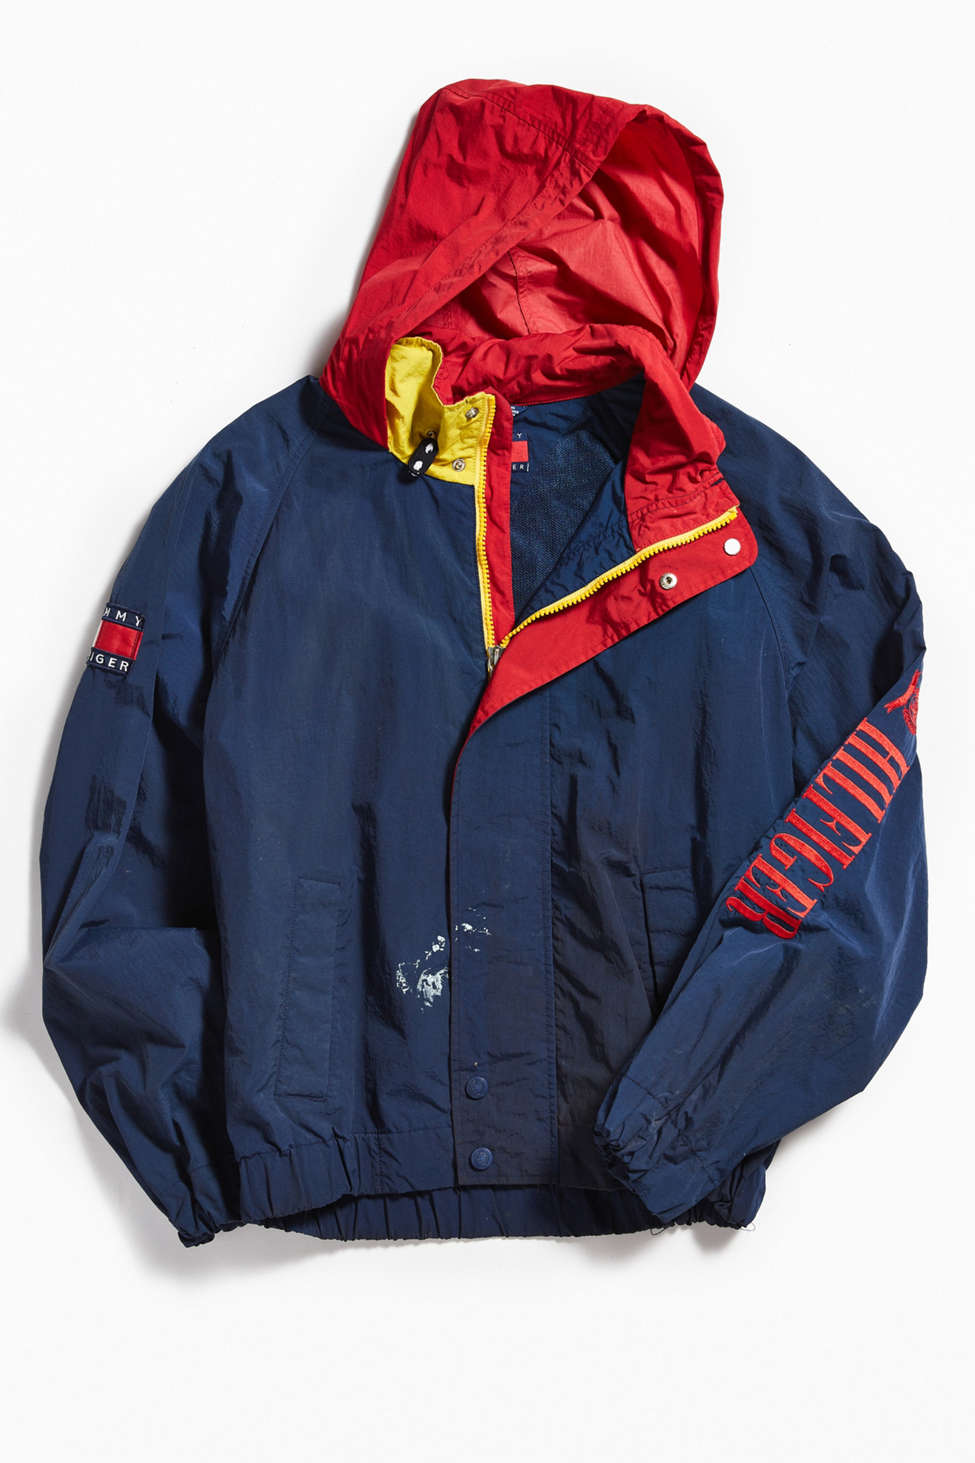 Vintage Tommy Hilfiger Navy Sailing Jacket Urban Outfitters